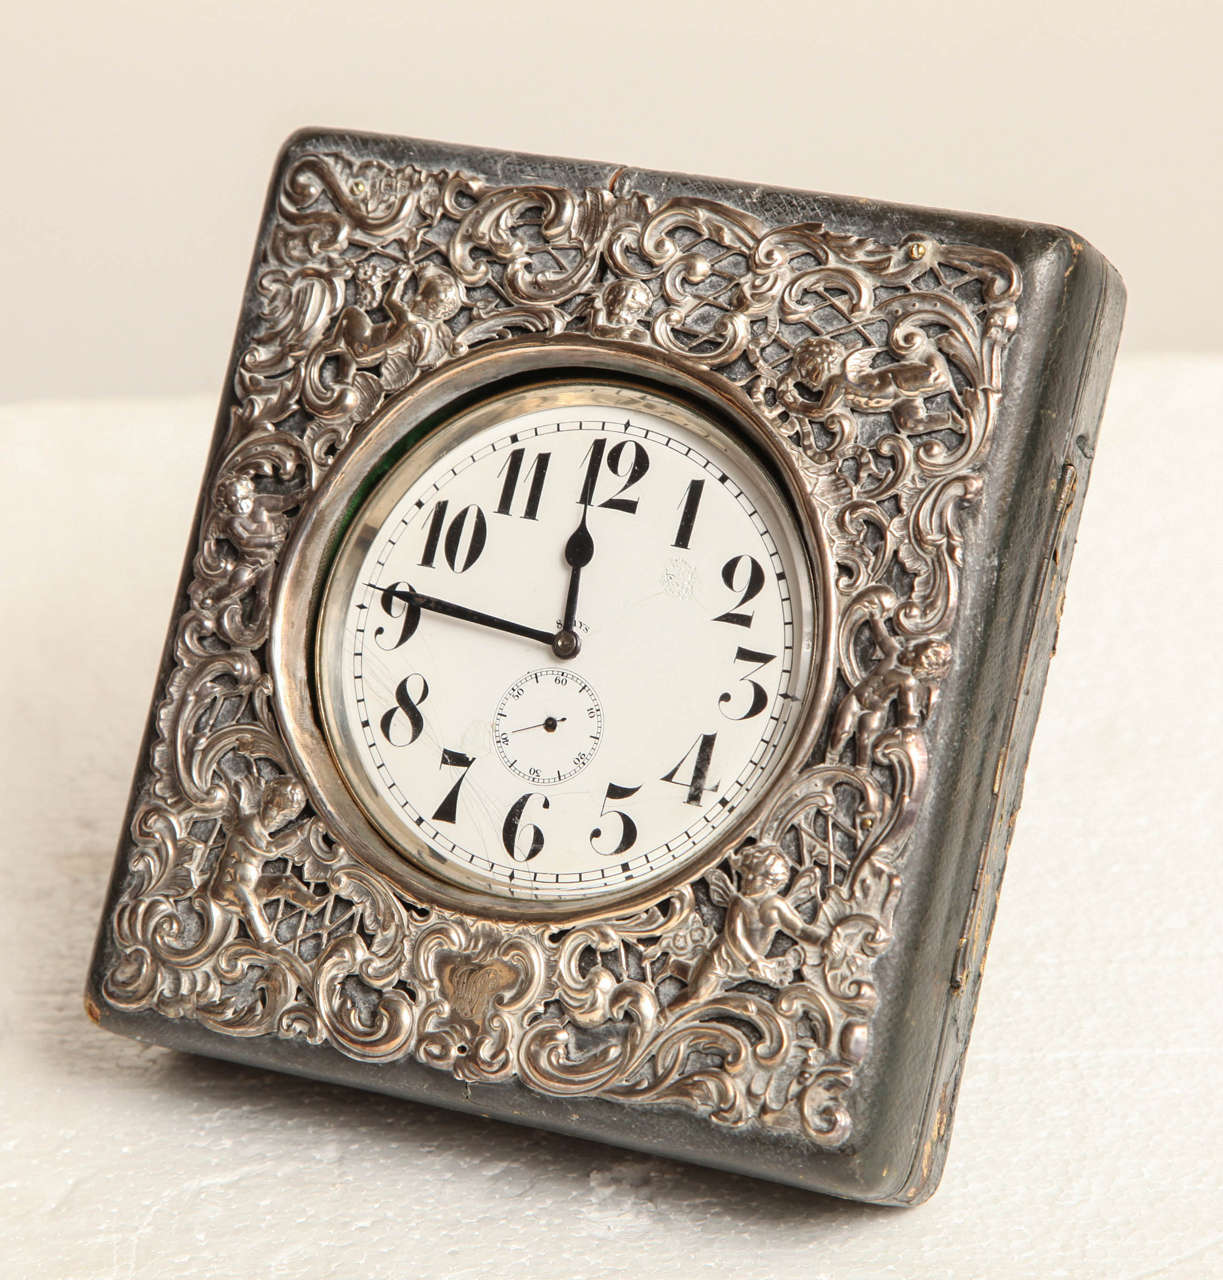 Late 19th Century Swiss Traveling Clock Made for the English Market Enclosed in a Silver and Leather Case